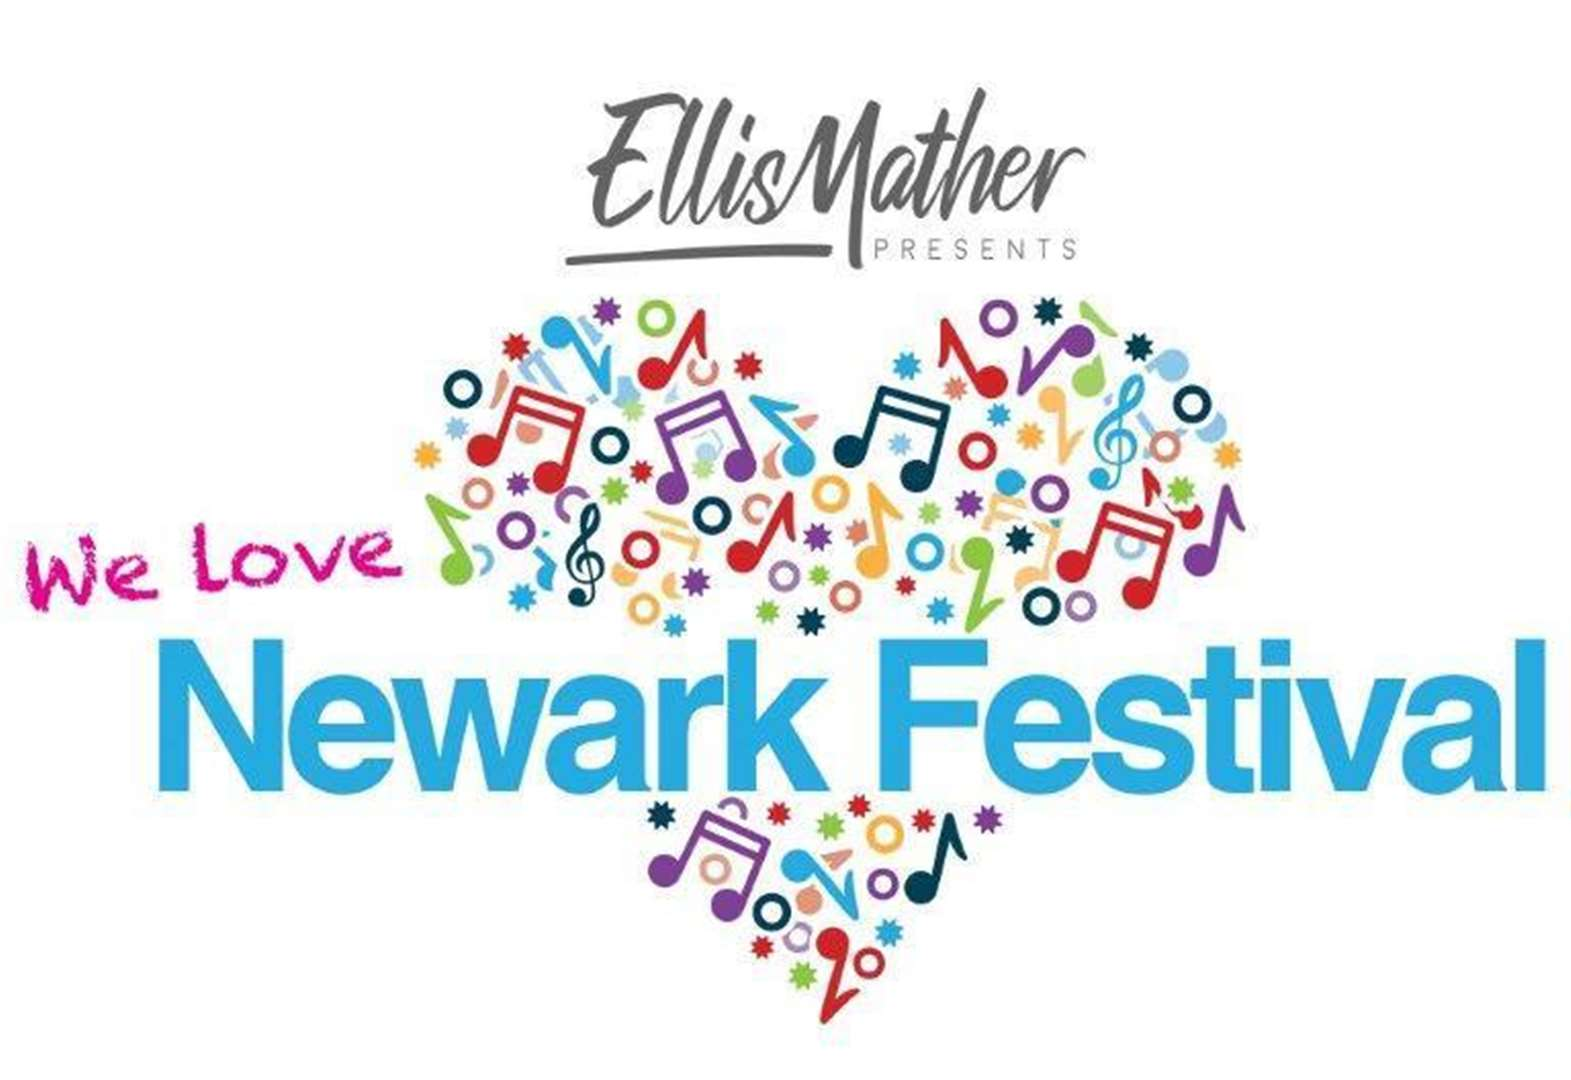 How to win tickets to Newark Festival